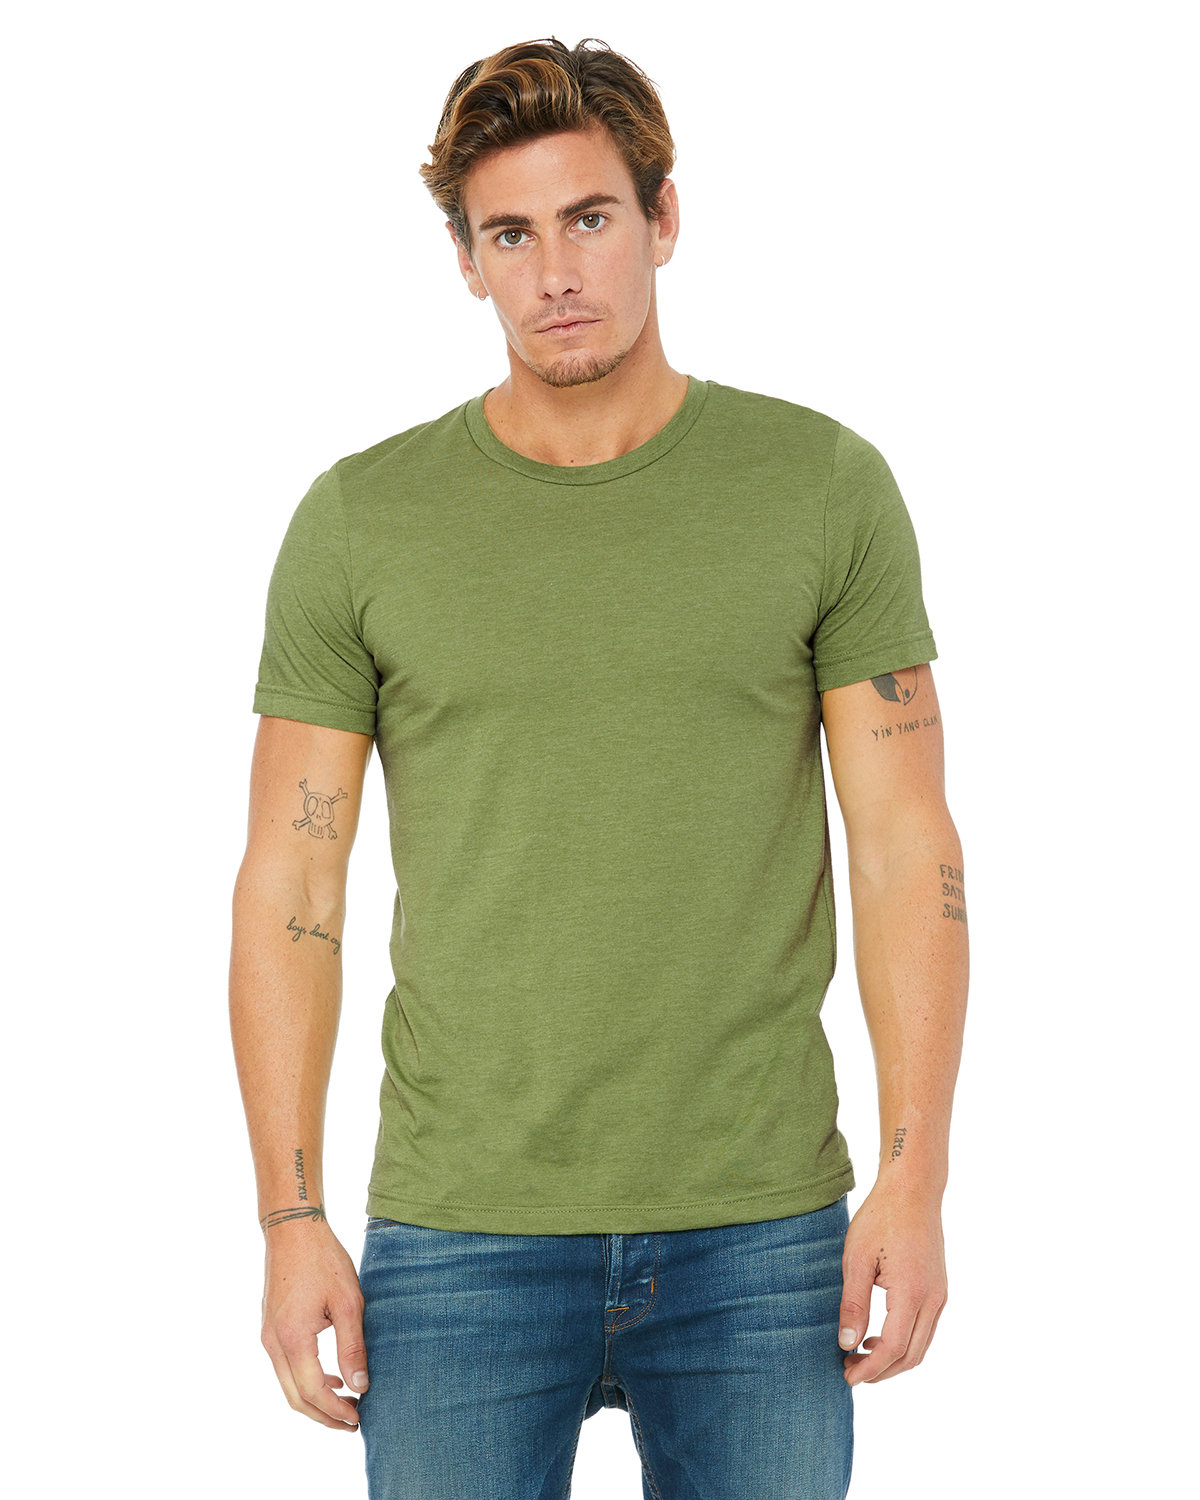 Bella + Canvas Unisex Heather CVC T-Shirt HEATHER GREEN